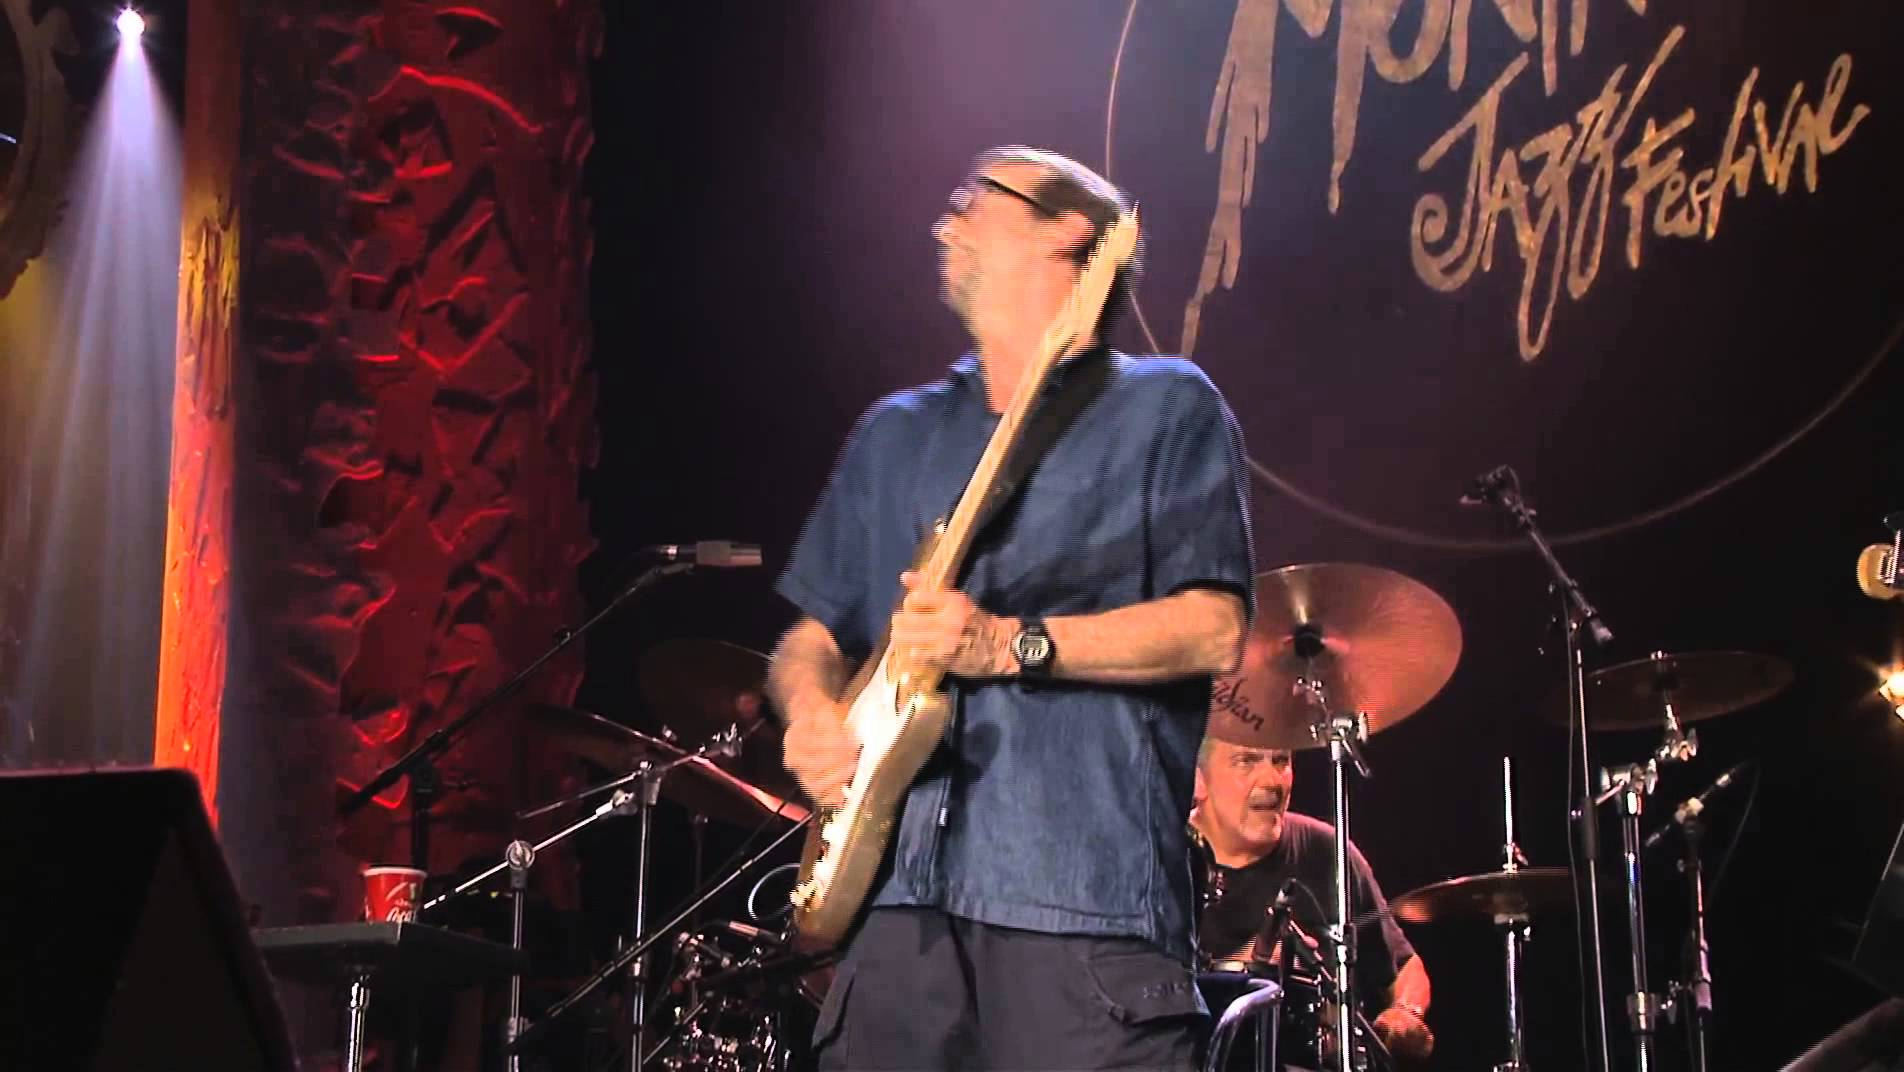 Eric Clapton, Marcus Miller, David Sanborn, Joe Sample, Steve Gadd – Legends (Montreux 1997)